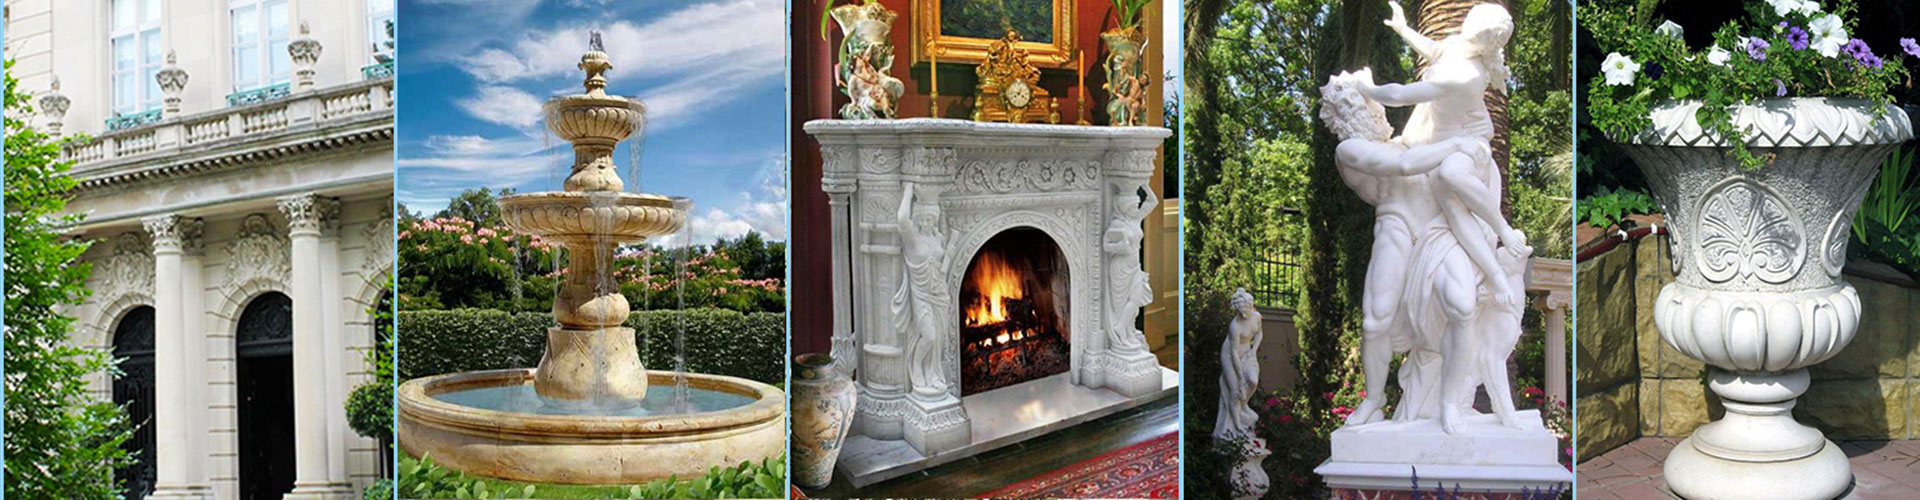 Muses gallery marble fireplace for sale